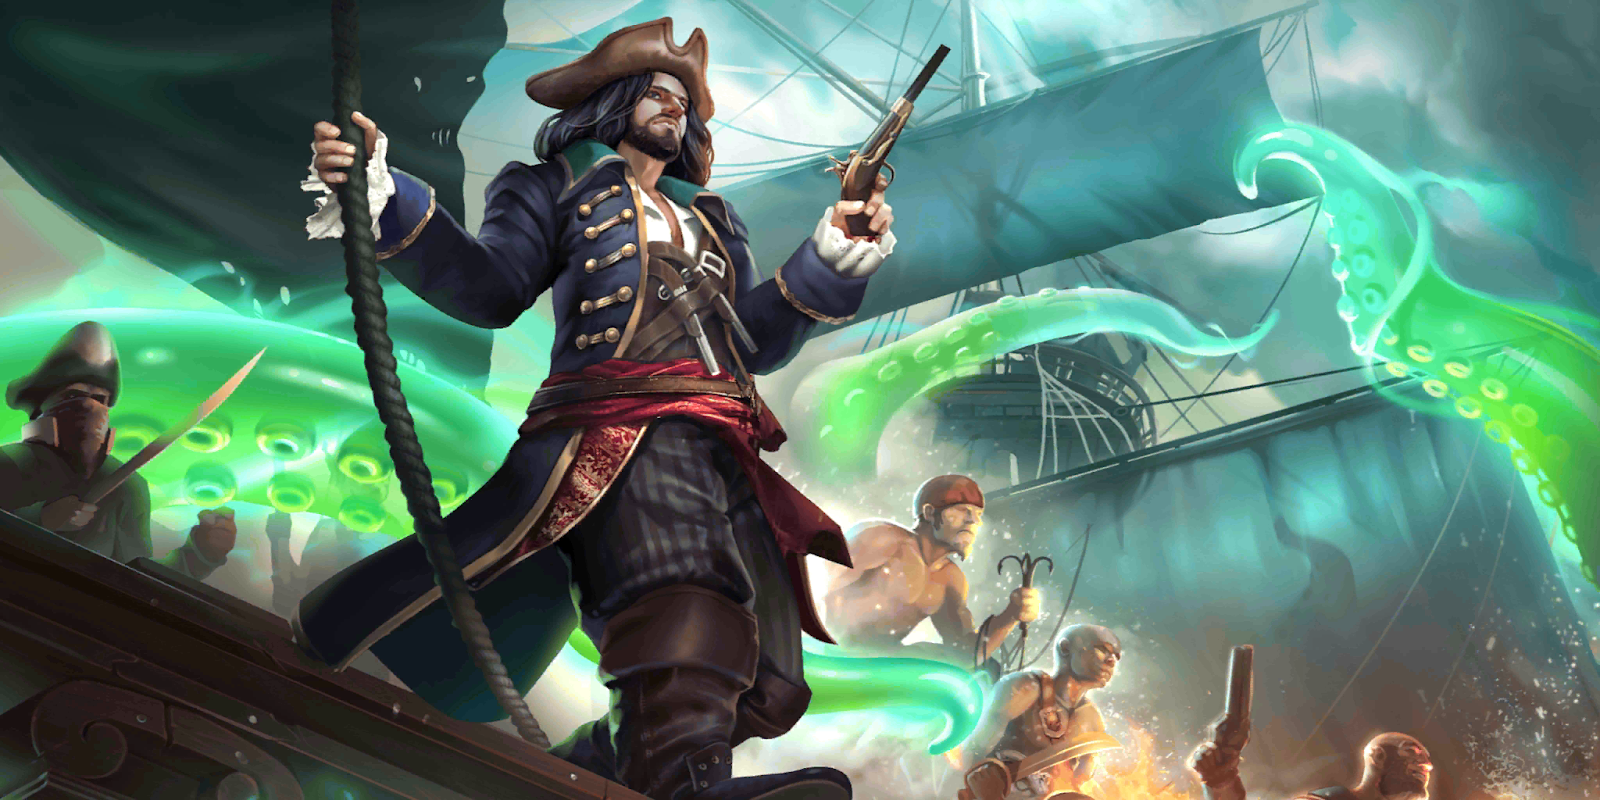 Last Pirate: Island Survival Mod Apk - Andro Ricky